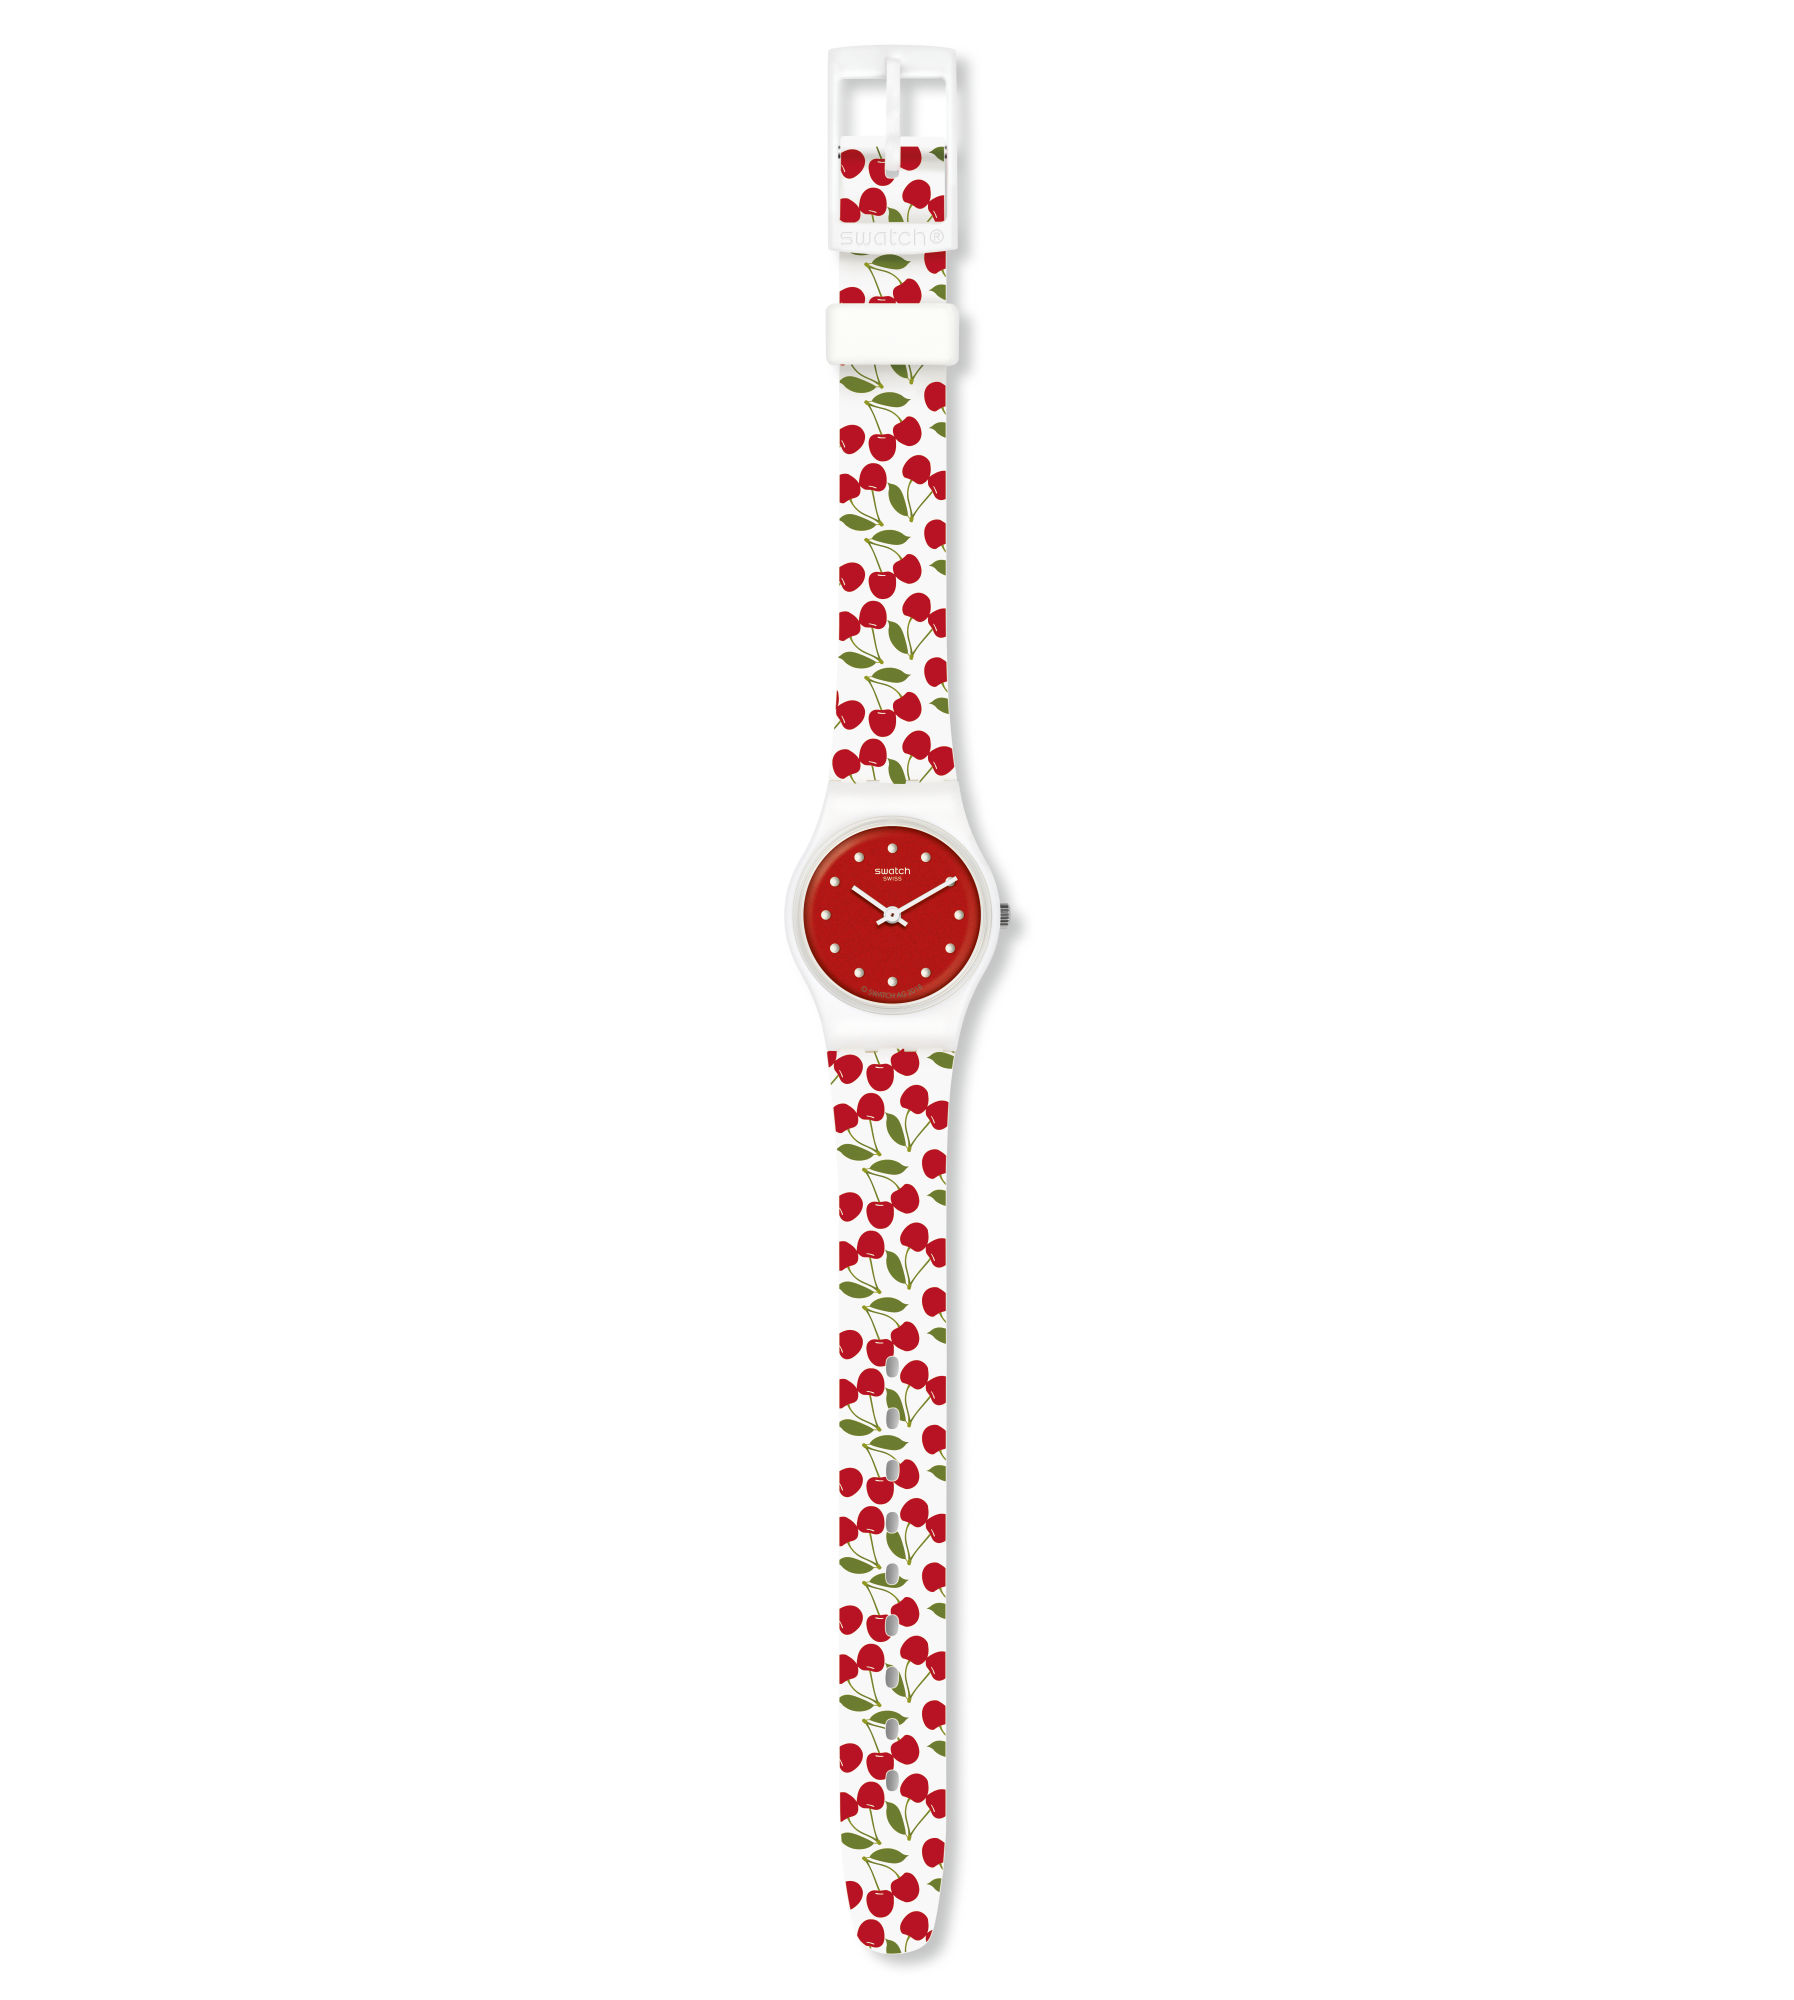 SWATCH WATCH WOMEN'S CERISE MOI KING. LW167